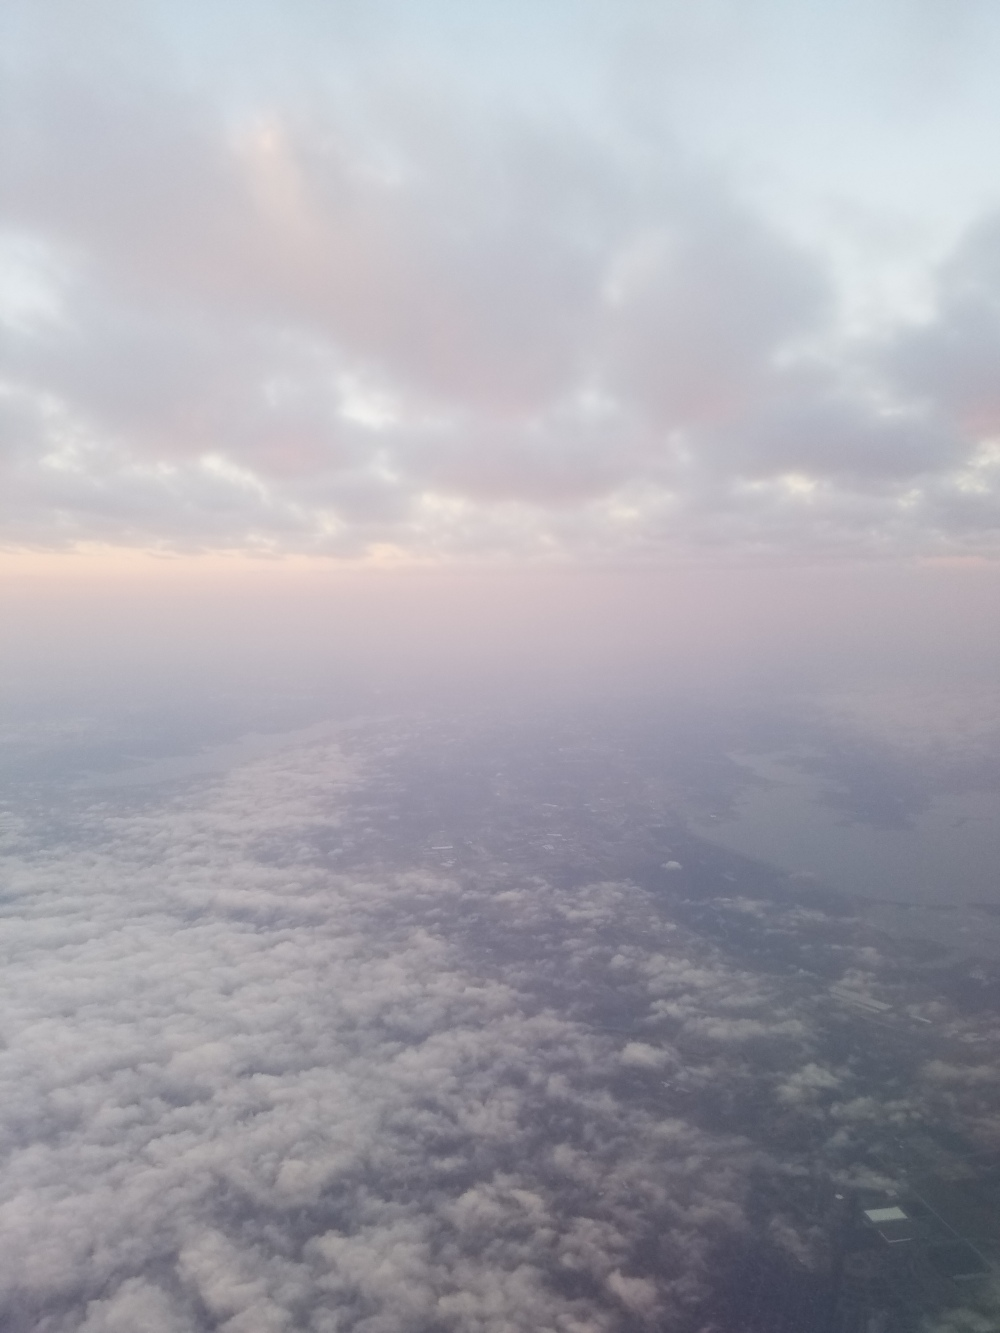 Somewhere between Dallas and STL, December 2016